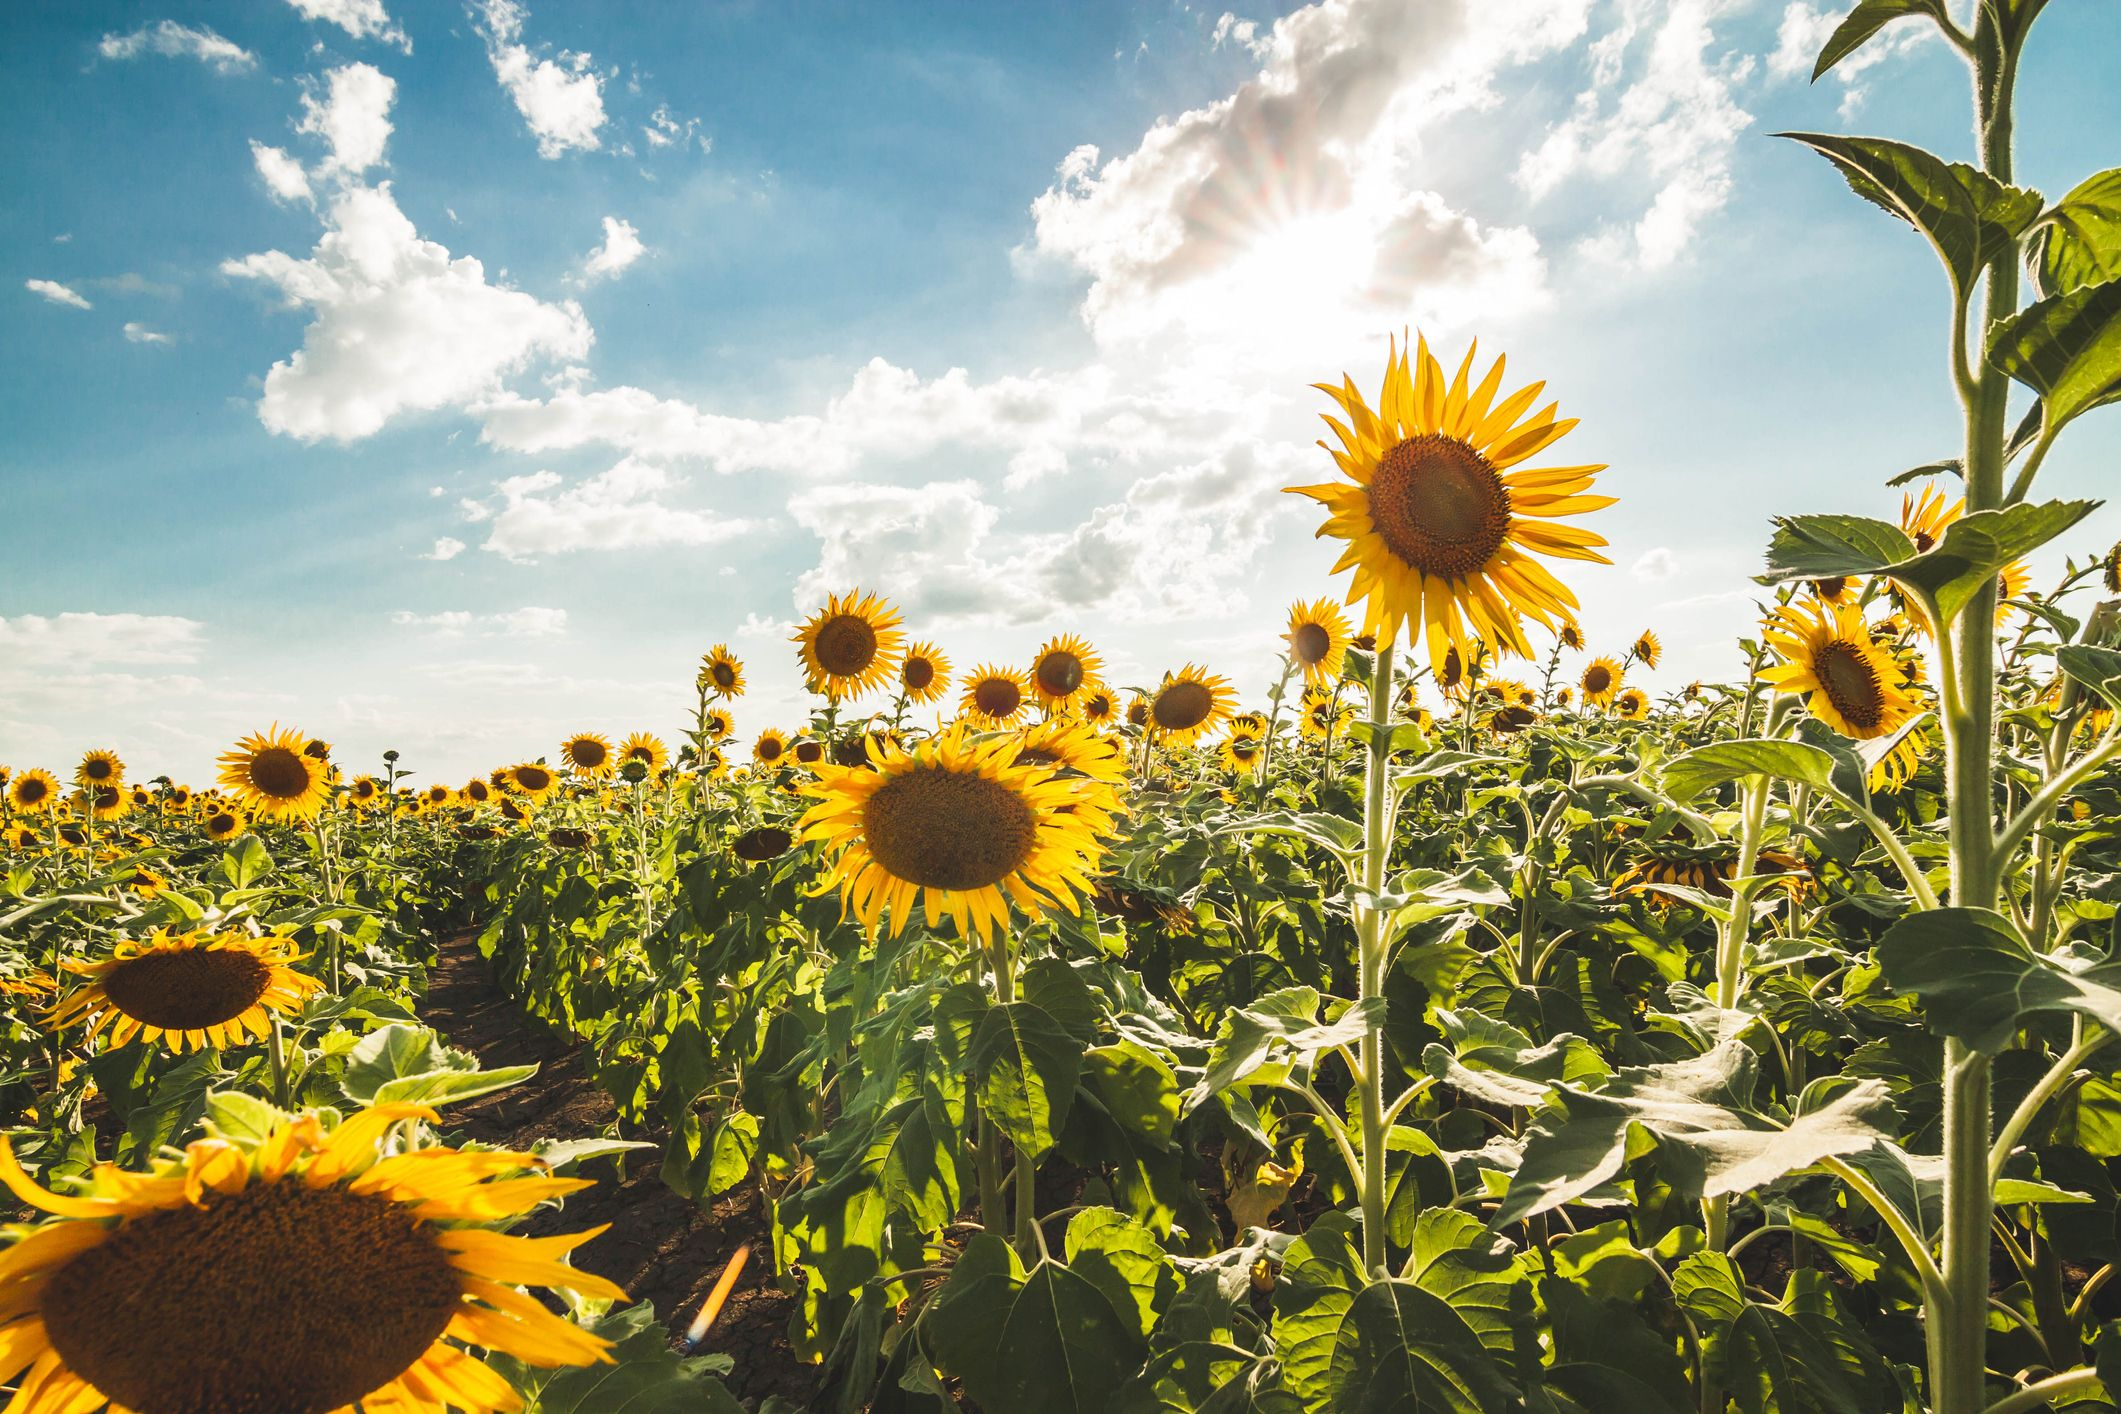 Want to Help Save The Bees? Start Planting Sunflowers in Your Yard